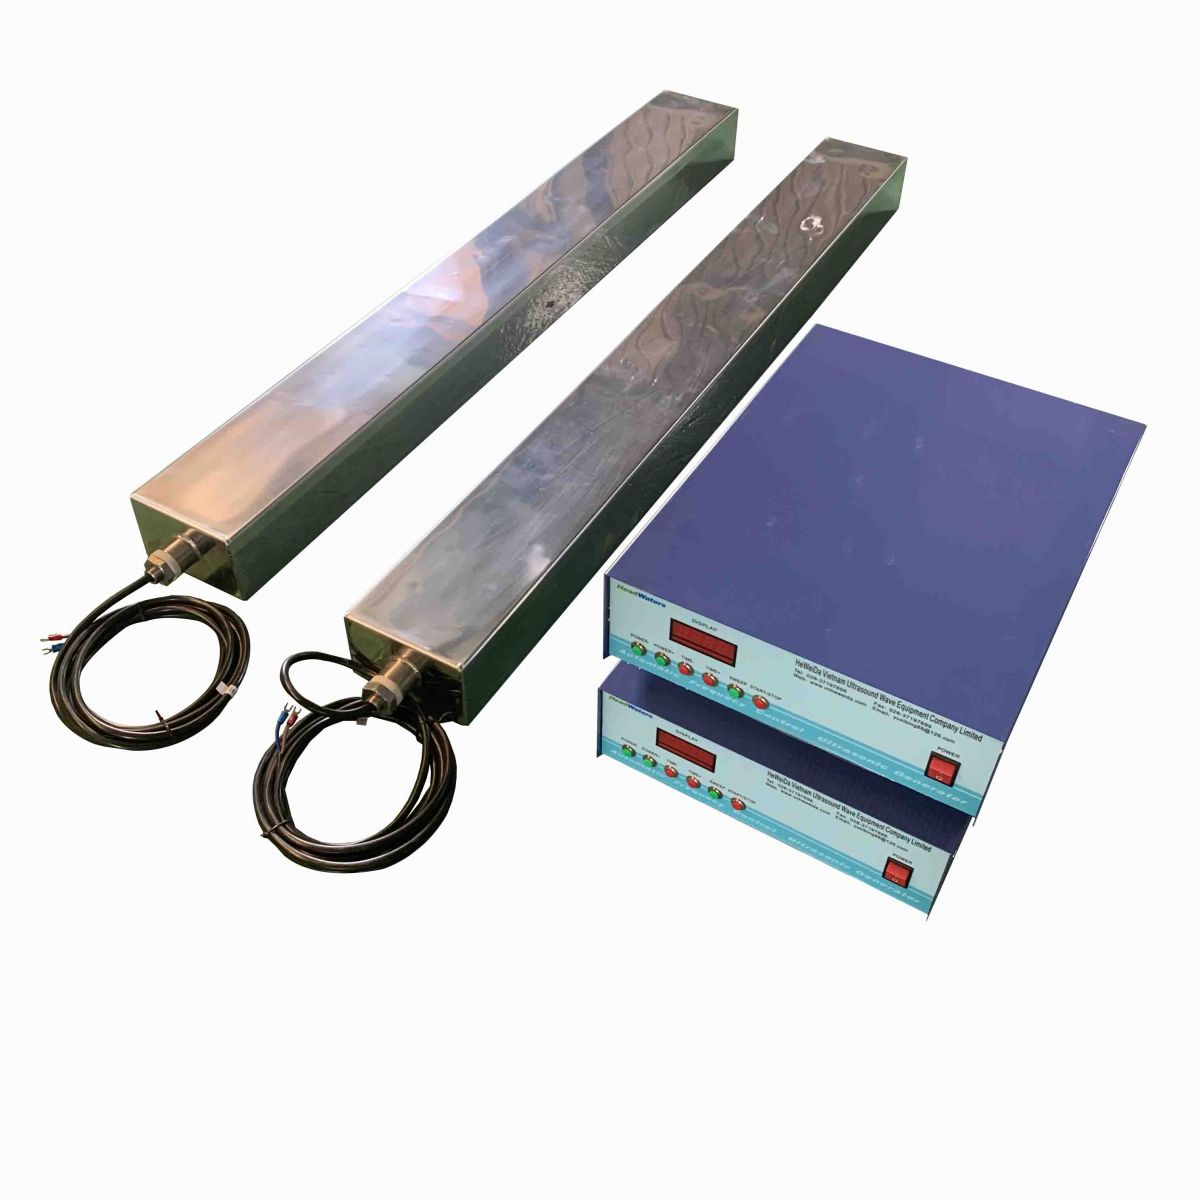 Ultrasonic vibrating plate